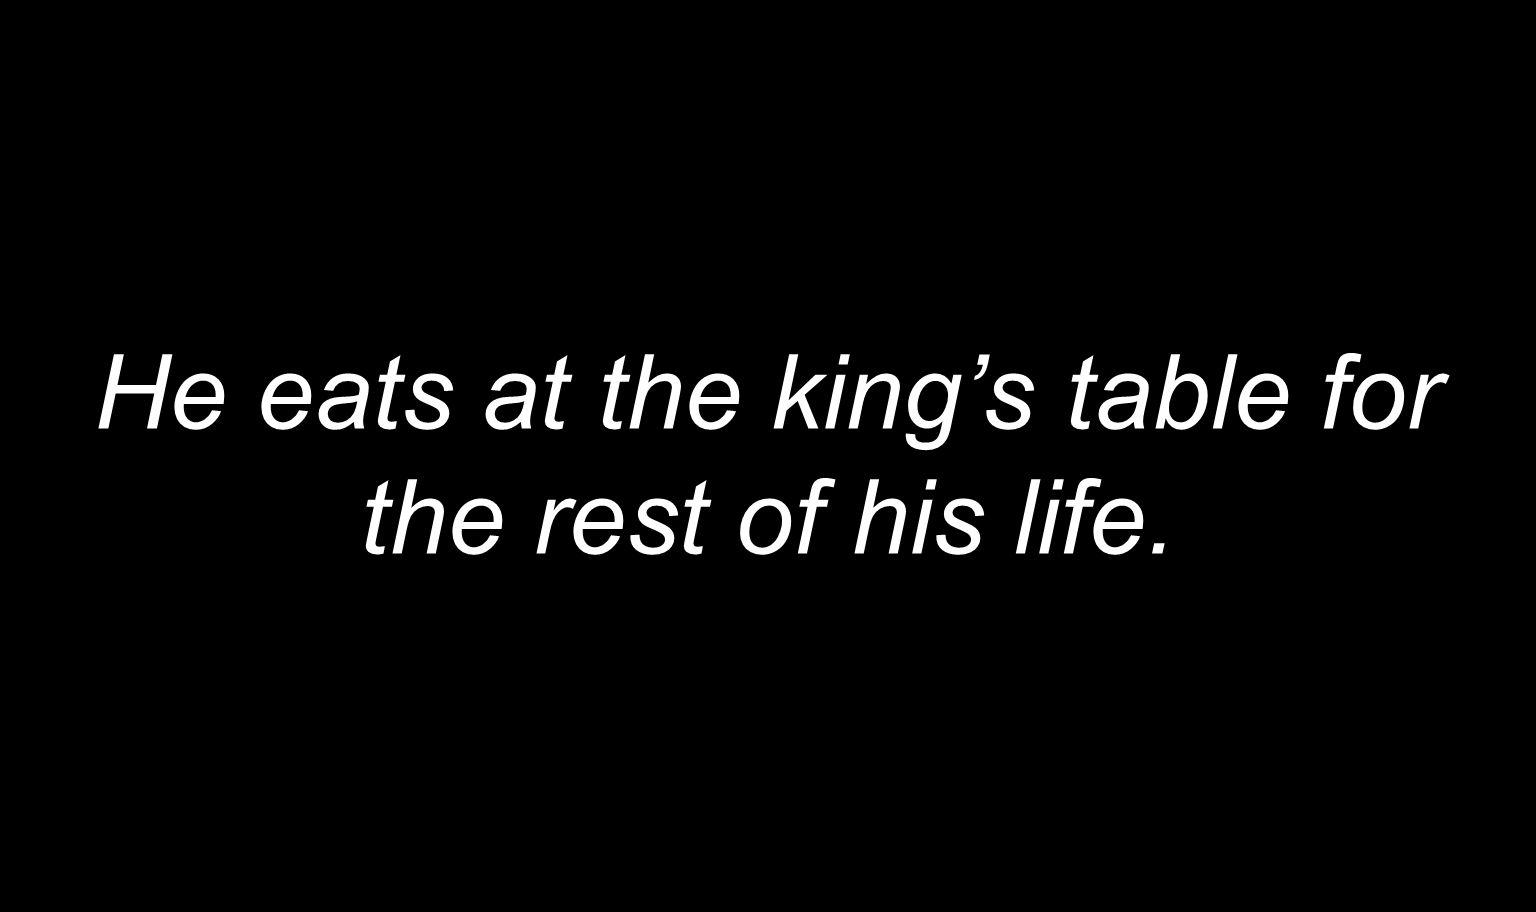 He eats at the kings table for the rest of his life.